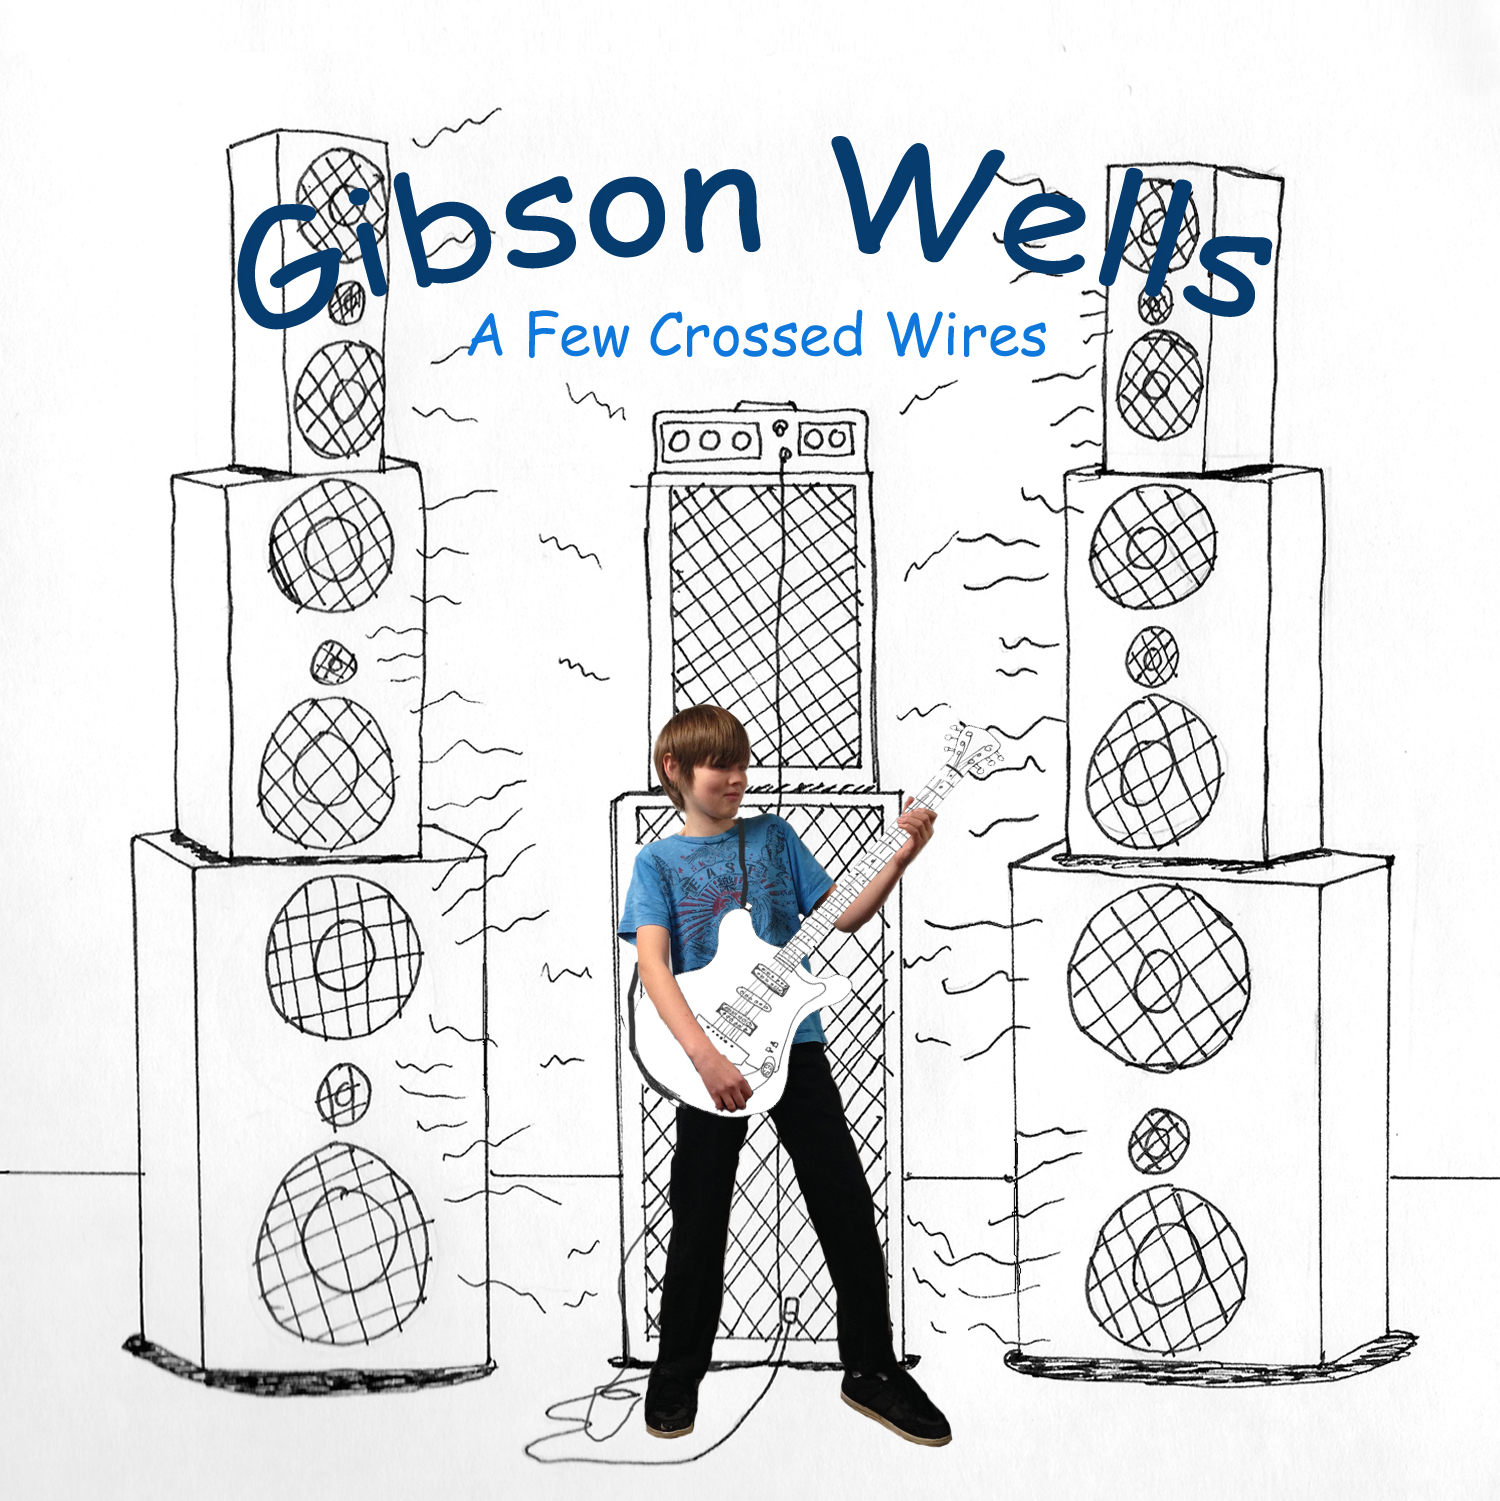 Gibson Wells-A Few Crossed Wires